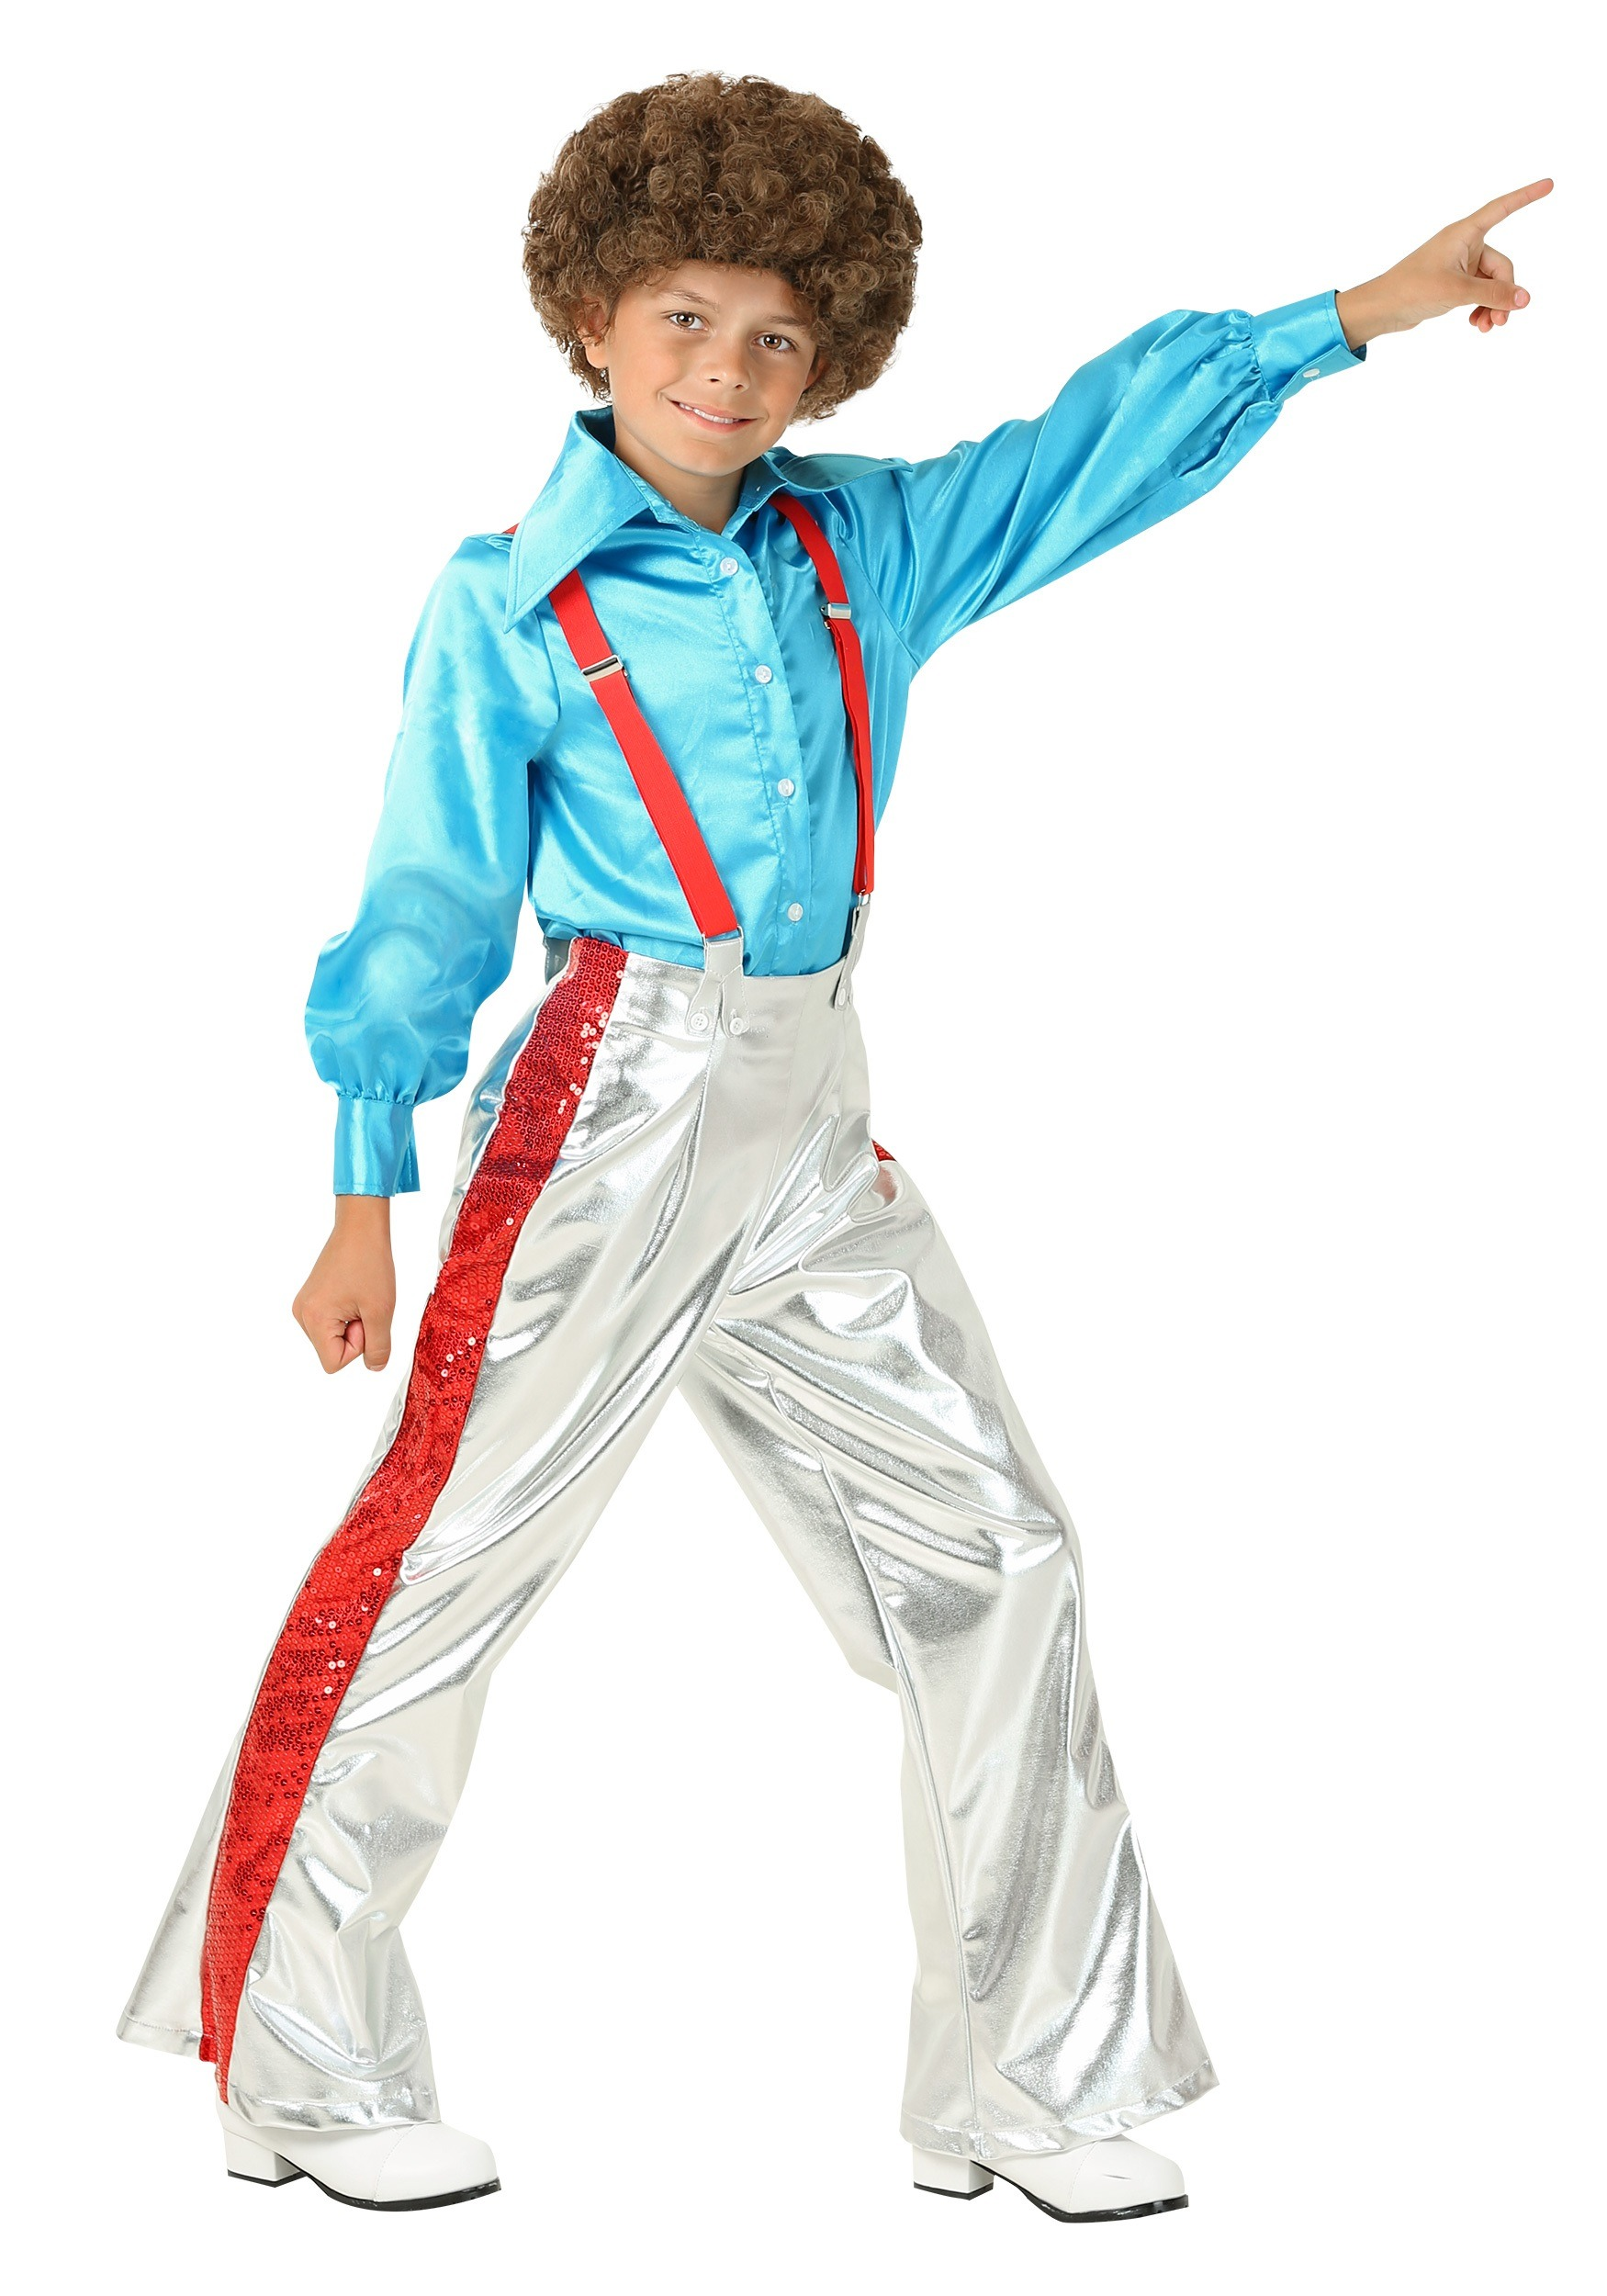 Boyu0027s Funky Disco Costume  sc 1 st  Halloween Costumes & Kids Disco Costumes u0026 Outfits - HalloweenCostumes.com